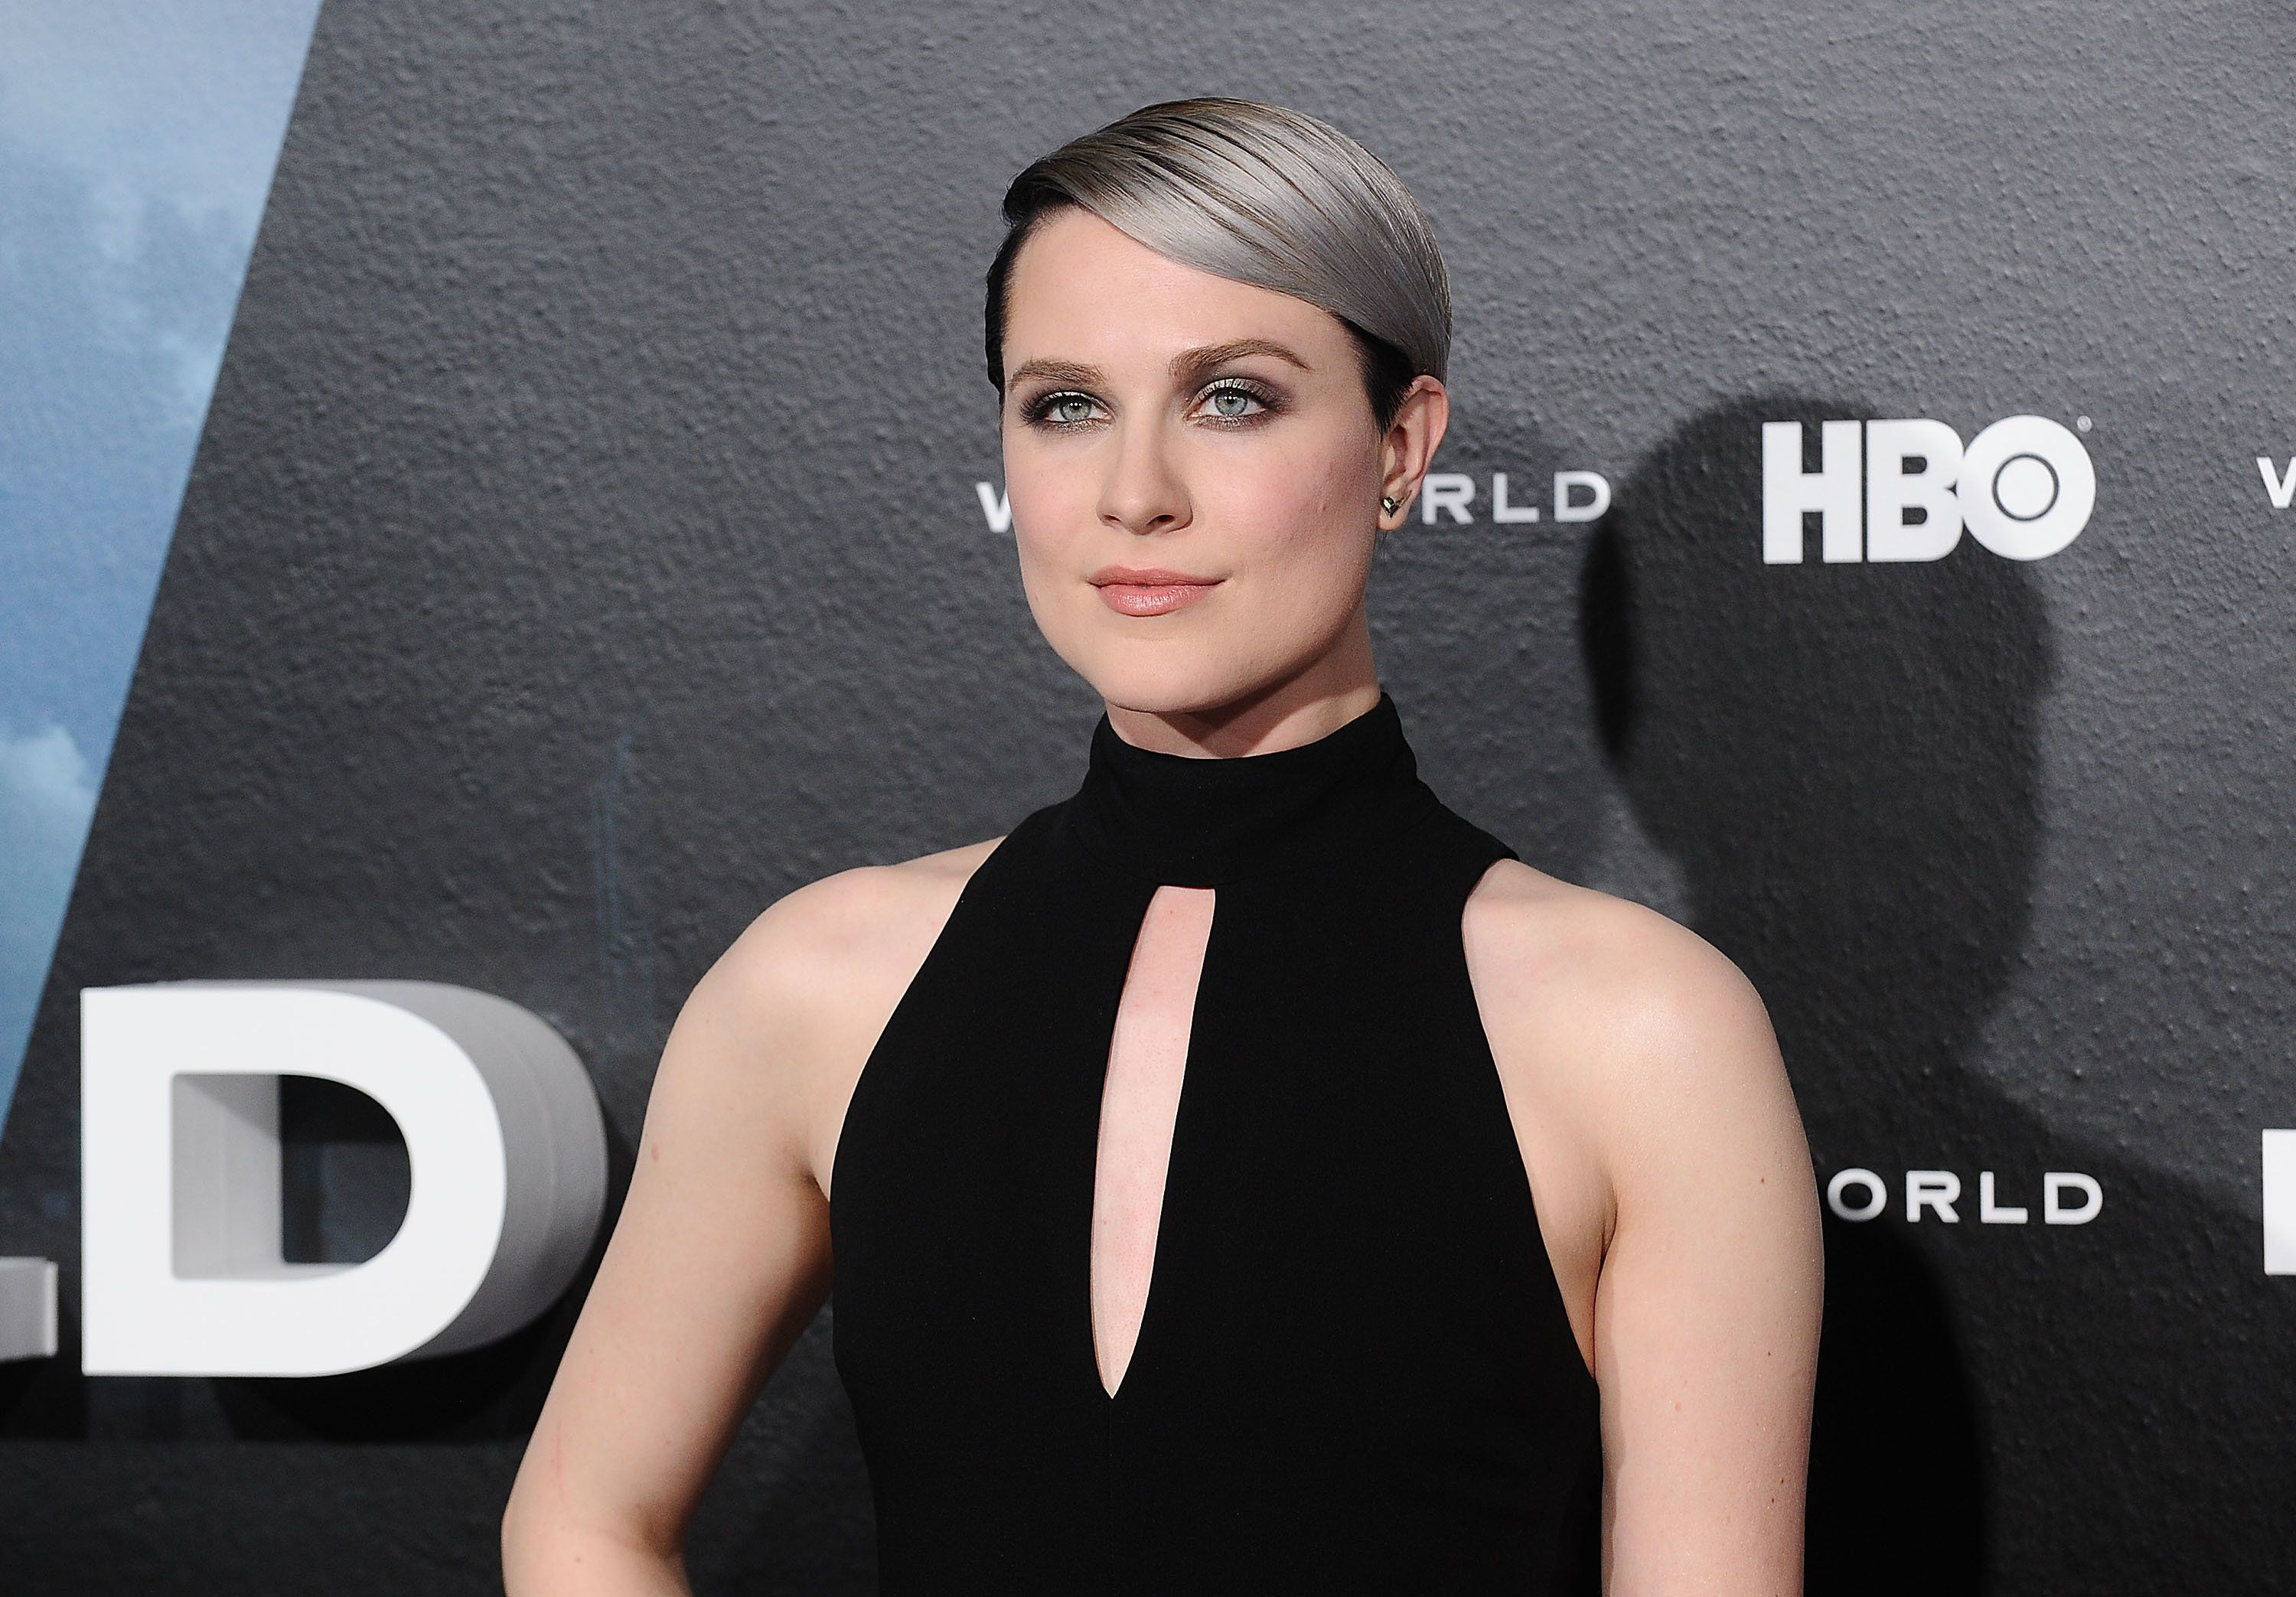 HOLLYWOOD, CA - SEPTEMBER 29:  Actress Evan Rachel Wood attends the premiere of 'Westworld' at TCL Chinese Theatre on September 28, 2016 in Hollywood, California.  (Photo by Jason LaVeris/FilmMagic)